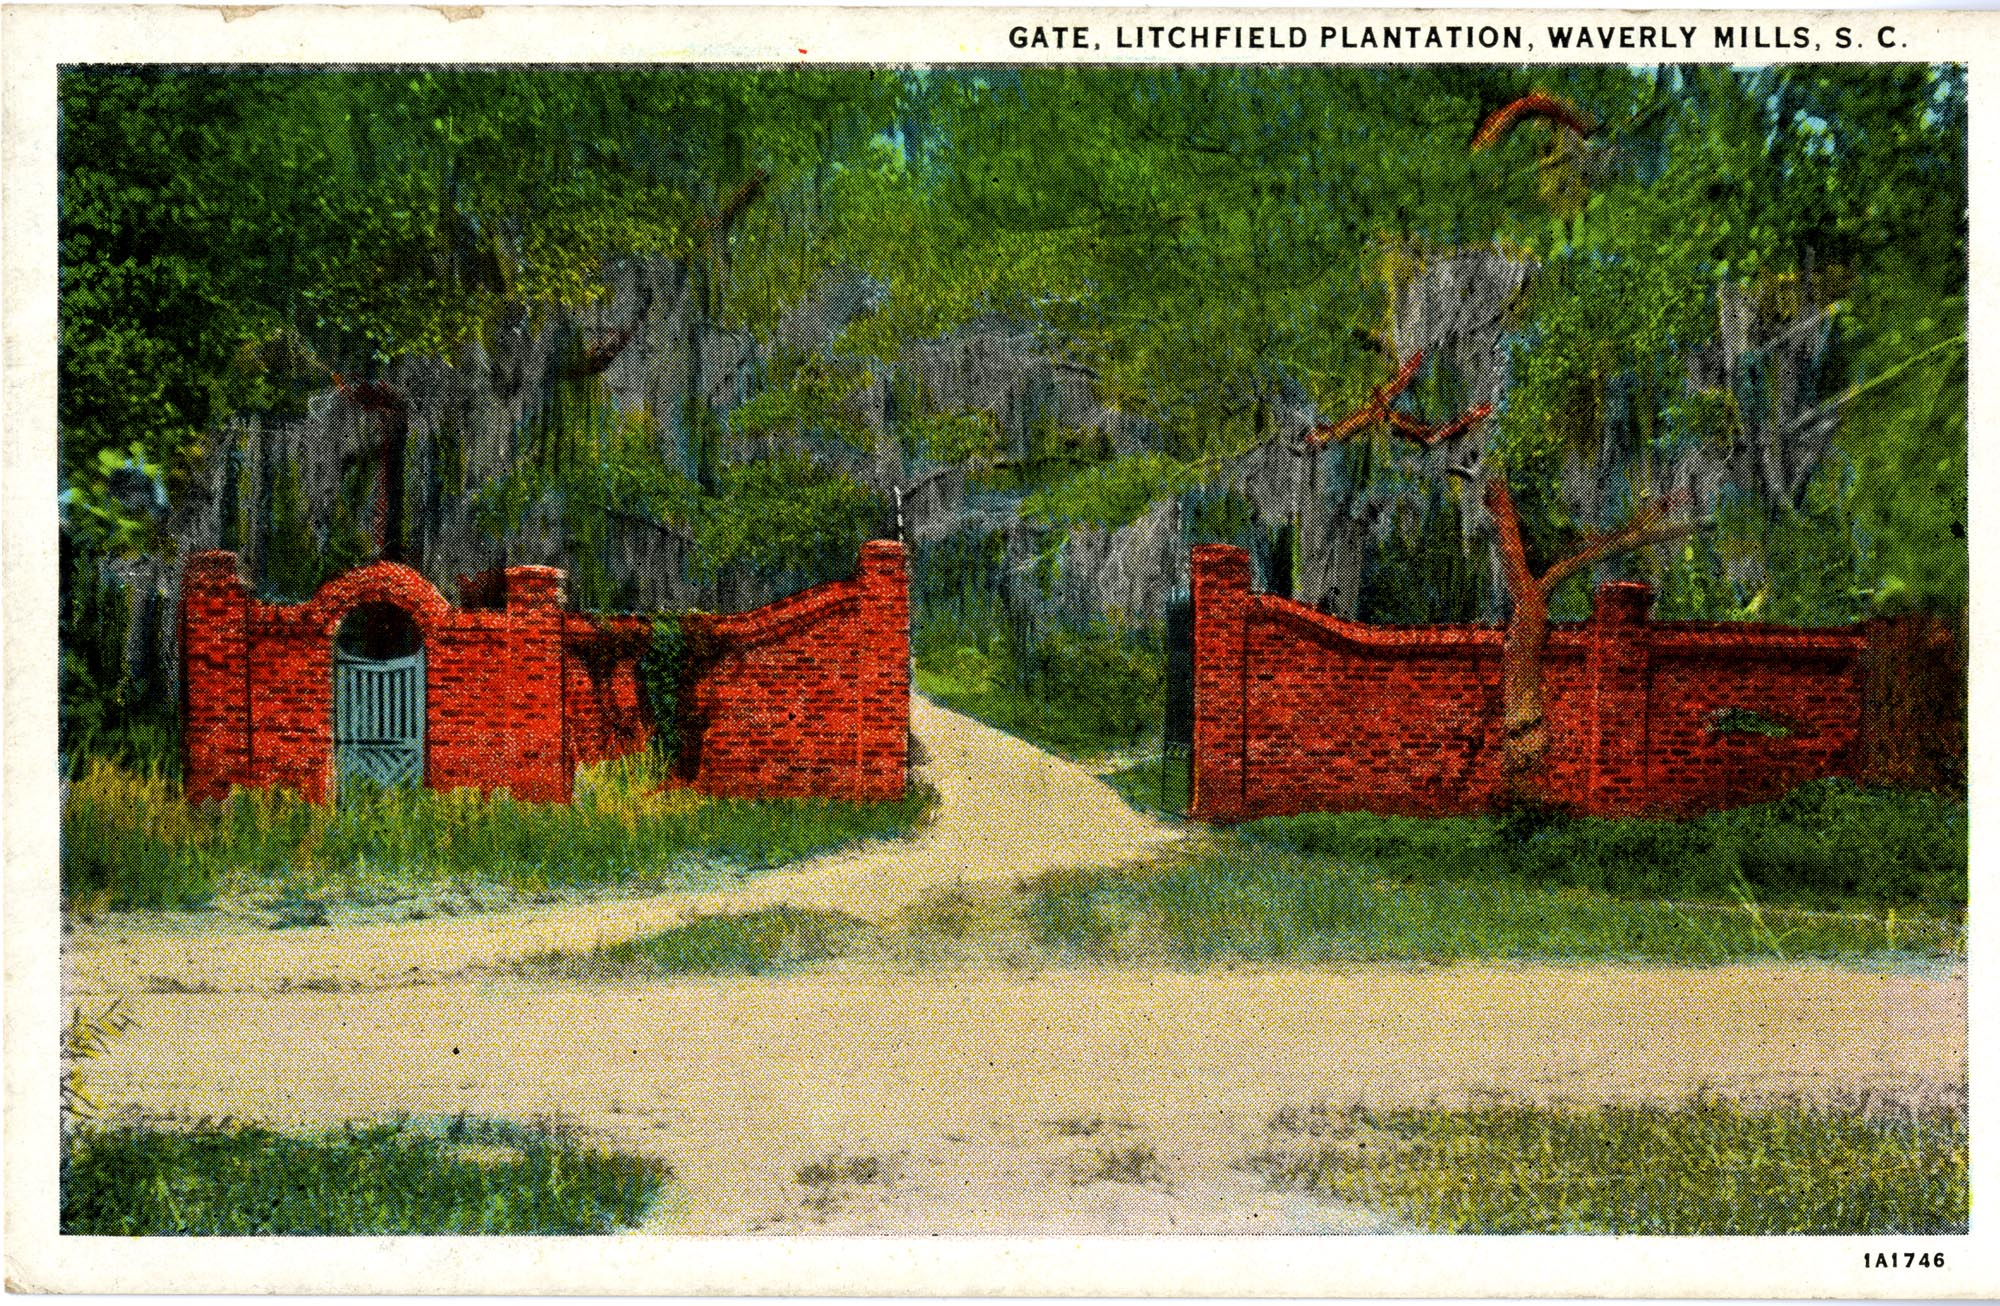 Plantations, Litchfield Plantation